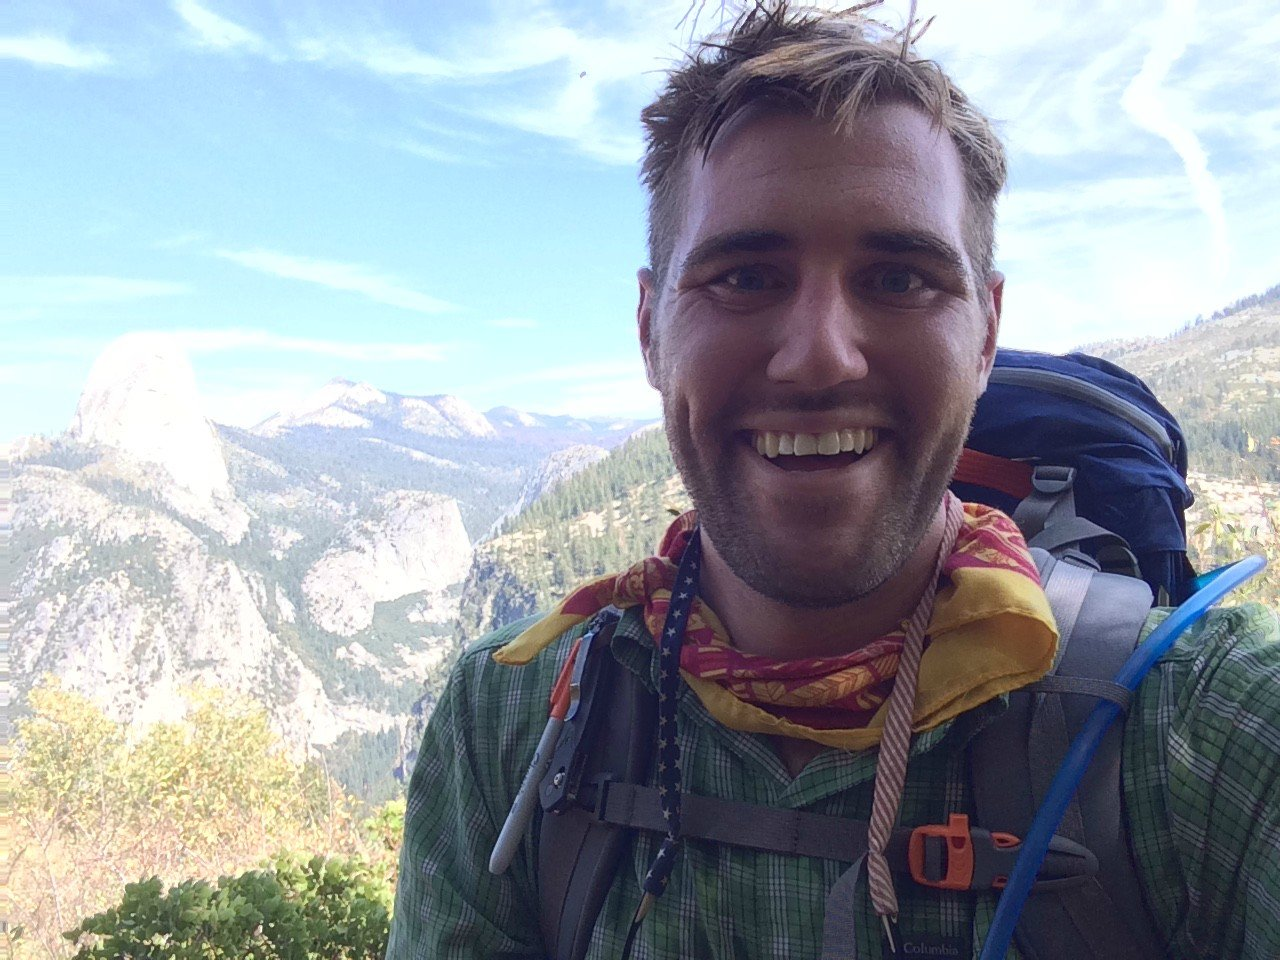 This Guy Chose Yosemite Instead of Going to Vegas with his Friends